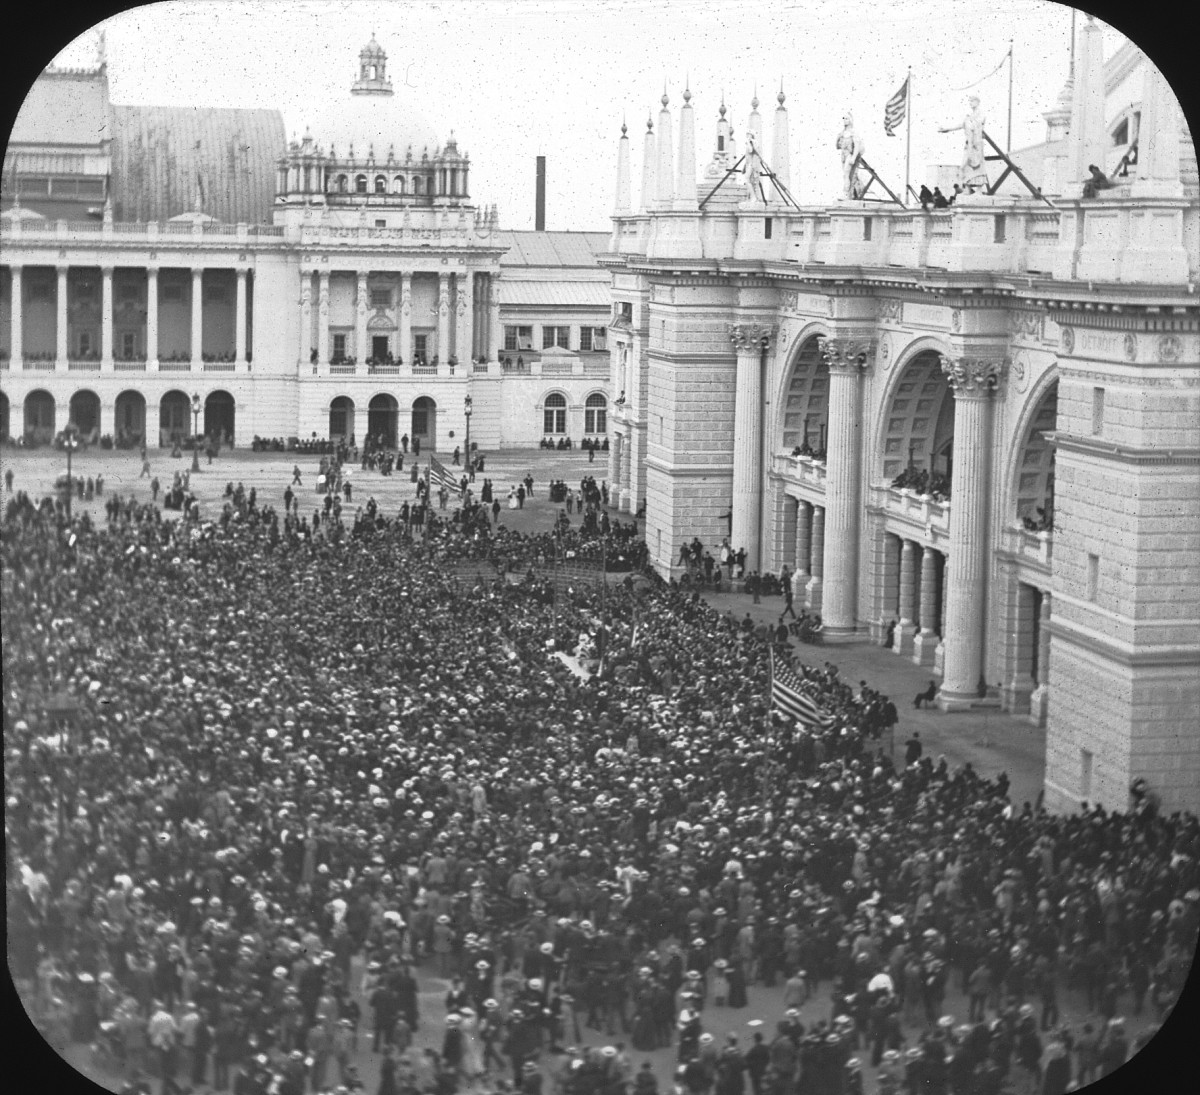 OPENING DAY CROWD, COLUMBIAN EXPOSITION